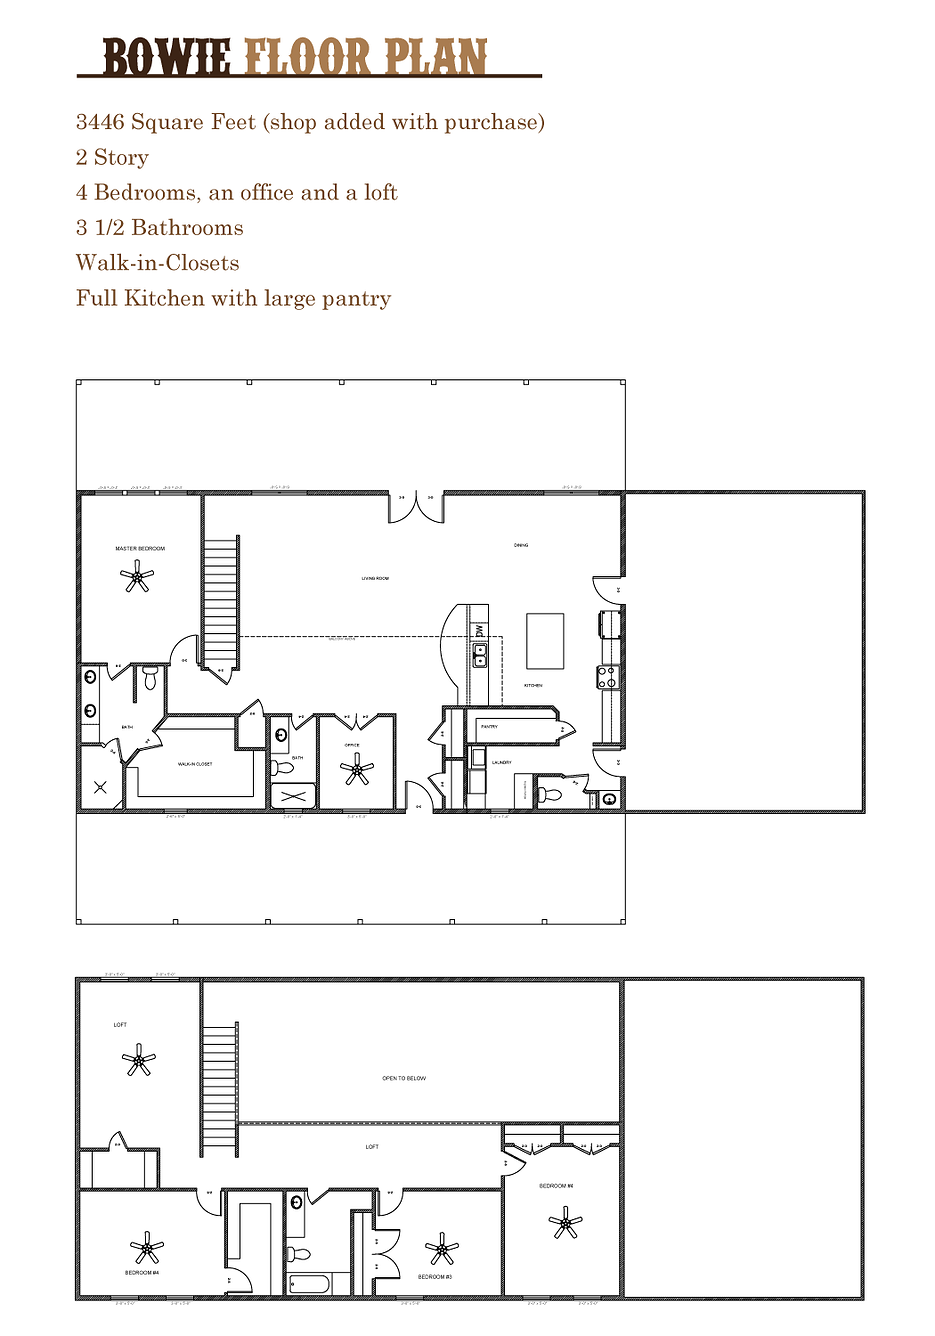 tons of storage barndominium plans for sale bowie floor plan barndominium plans for sale bowie floor plan this is awesome